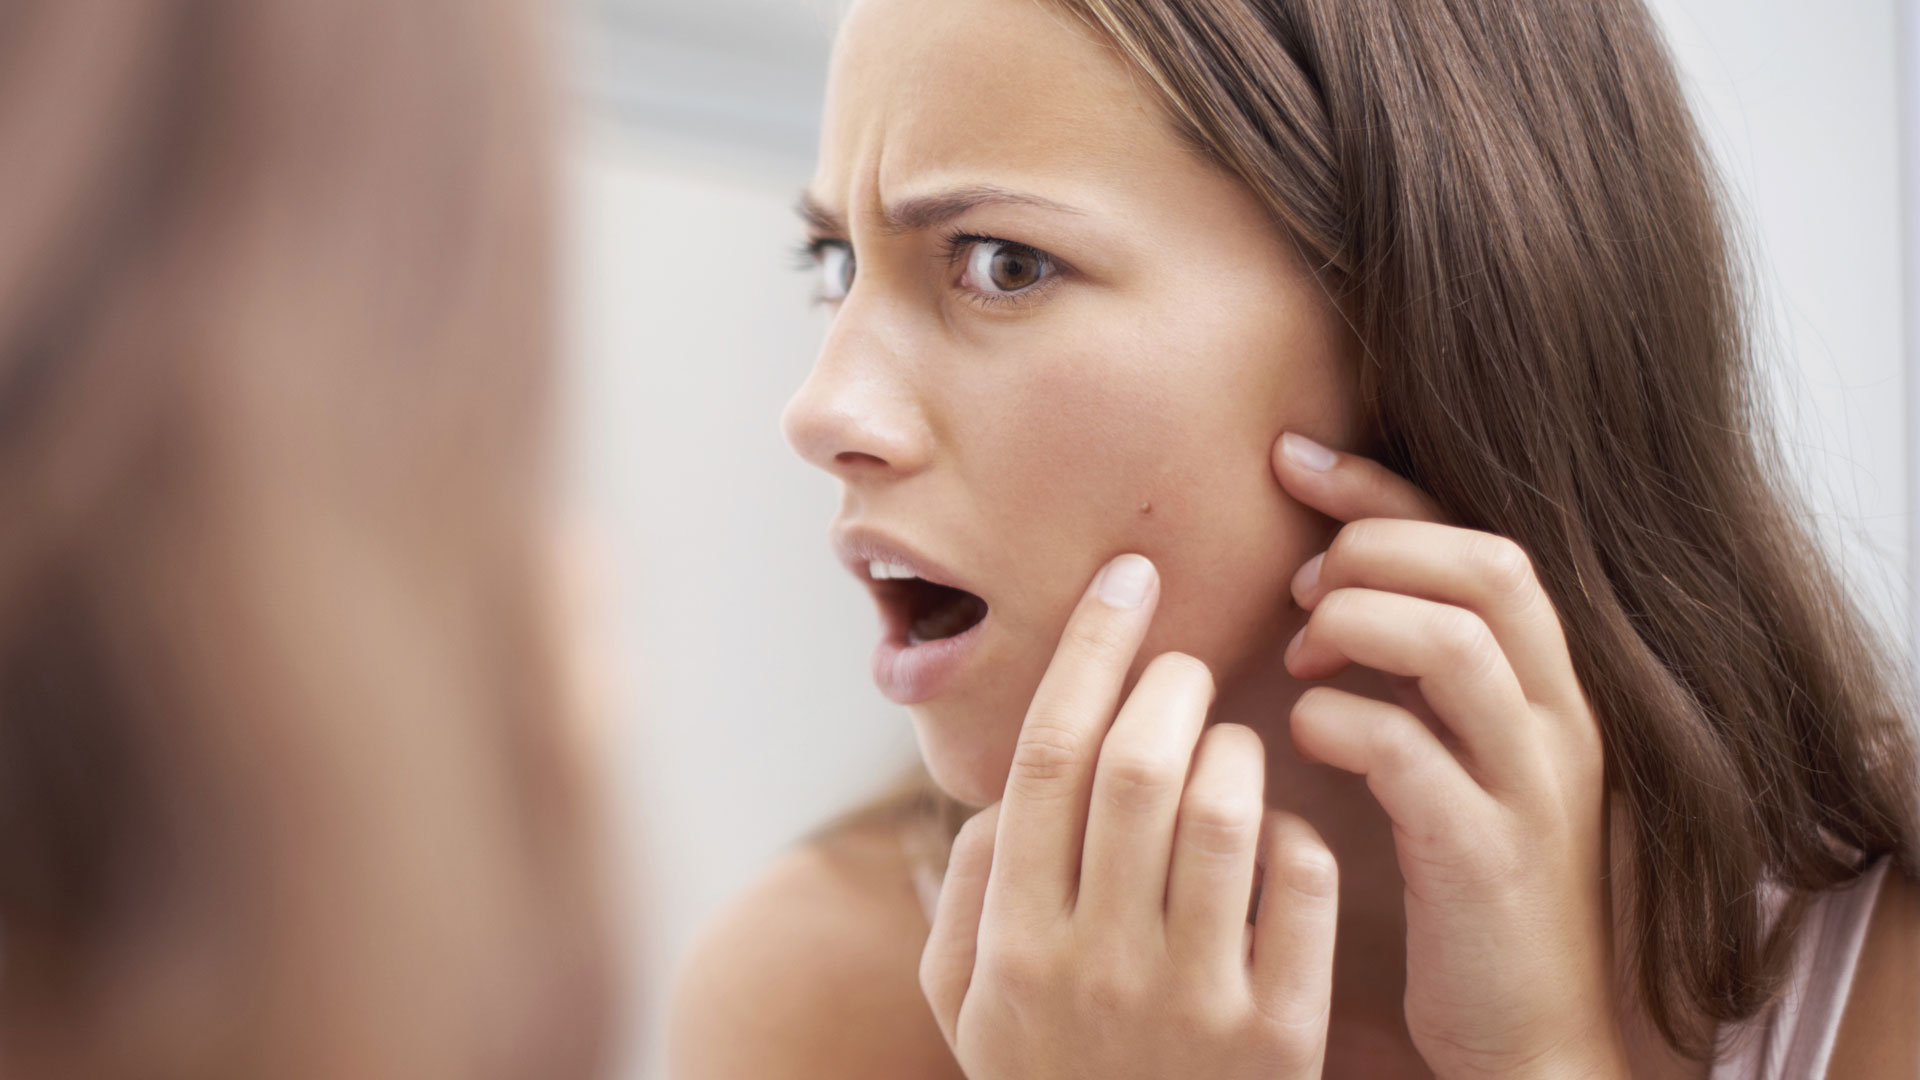 Woman surprised by blemishes on face